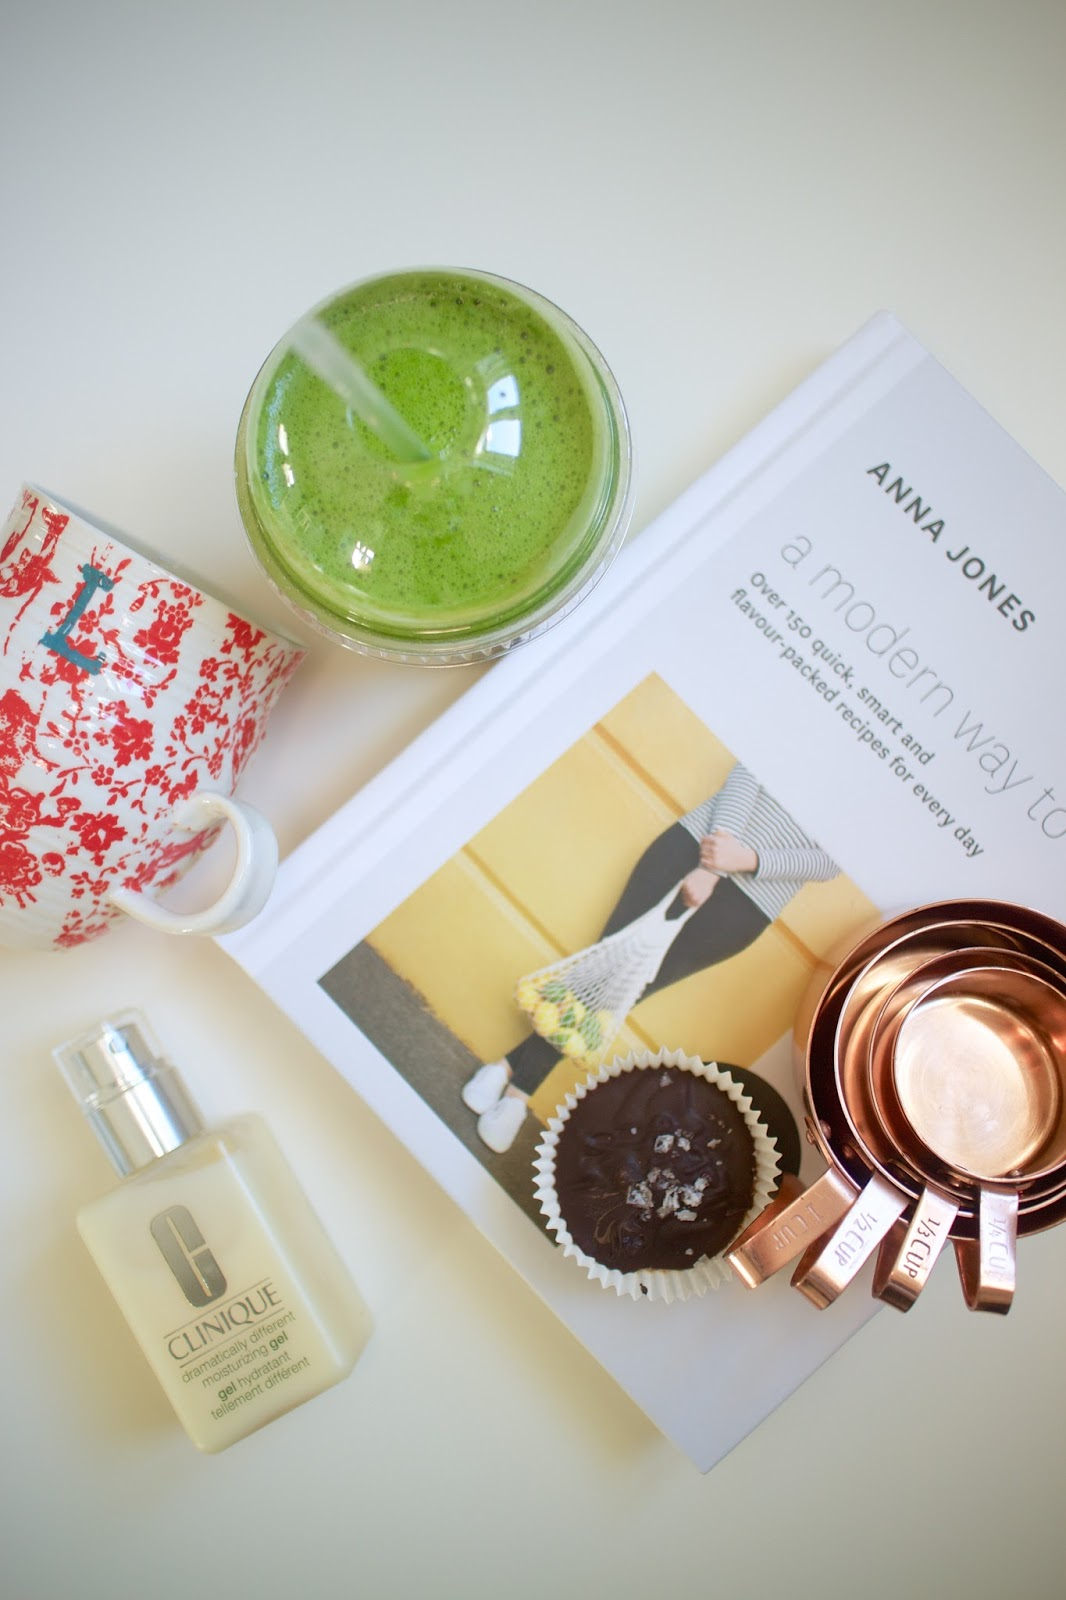 She's So Lucy Loves Lately Green Smoothie Beyond The Kale Anthropologie Healthy Almond Butter Cups Clinique Dramatically Different Oily Review Anna Jones Modern Way To Cook